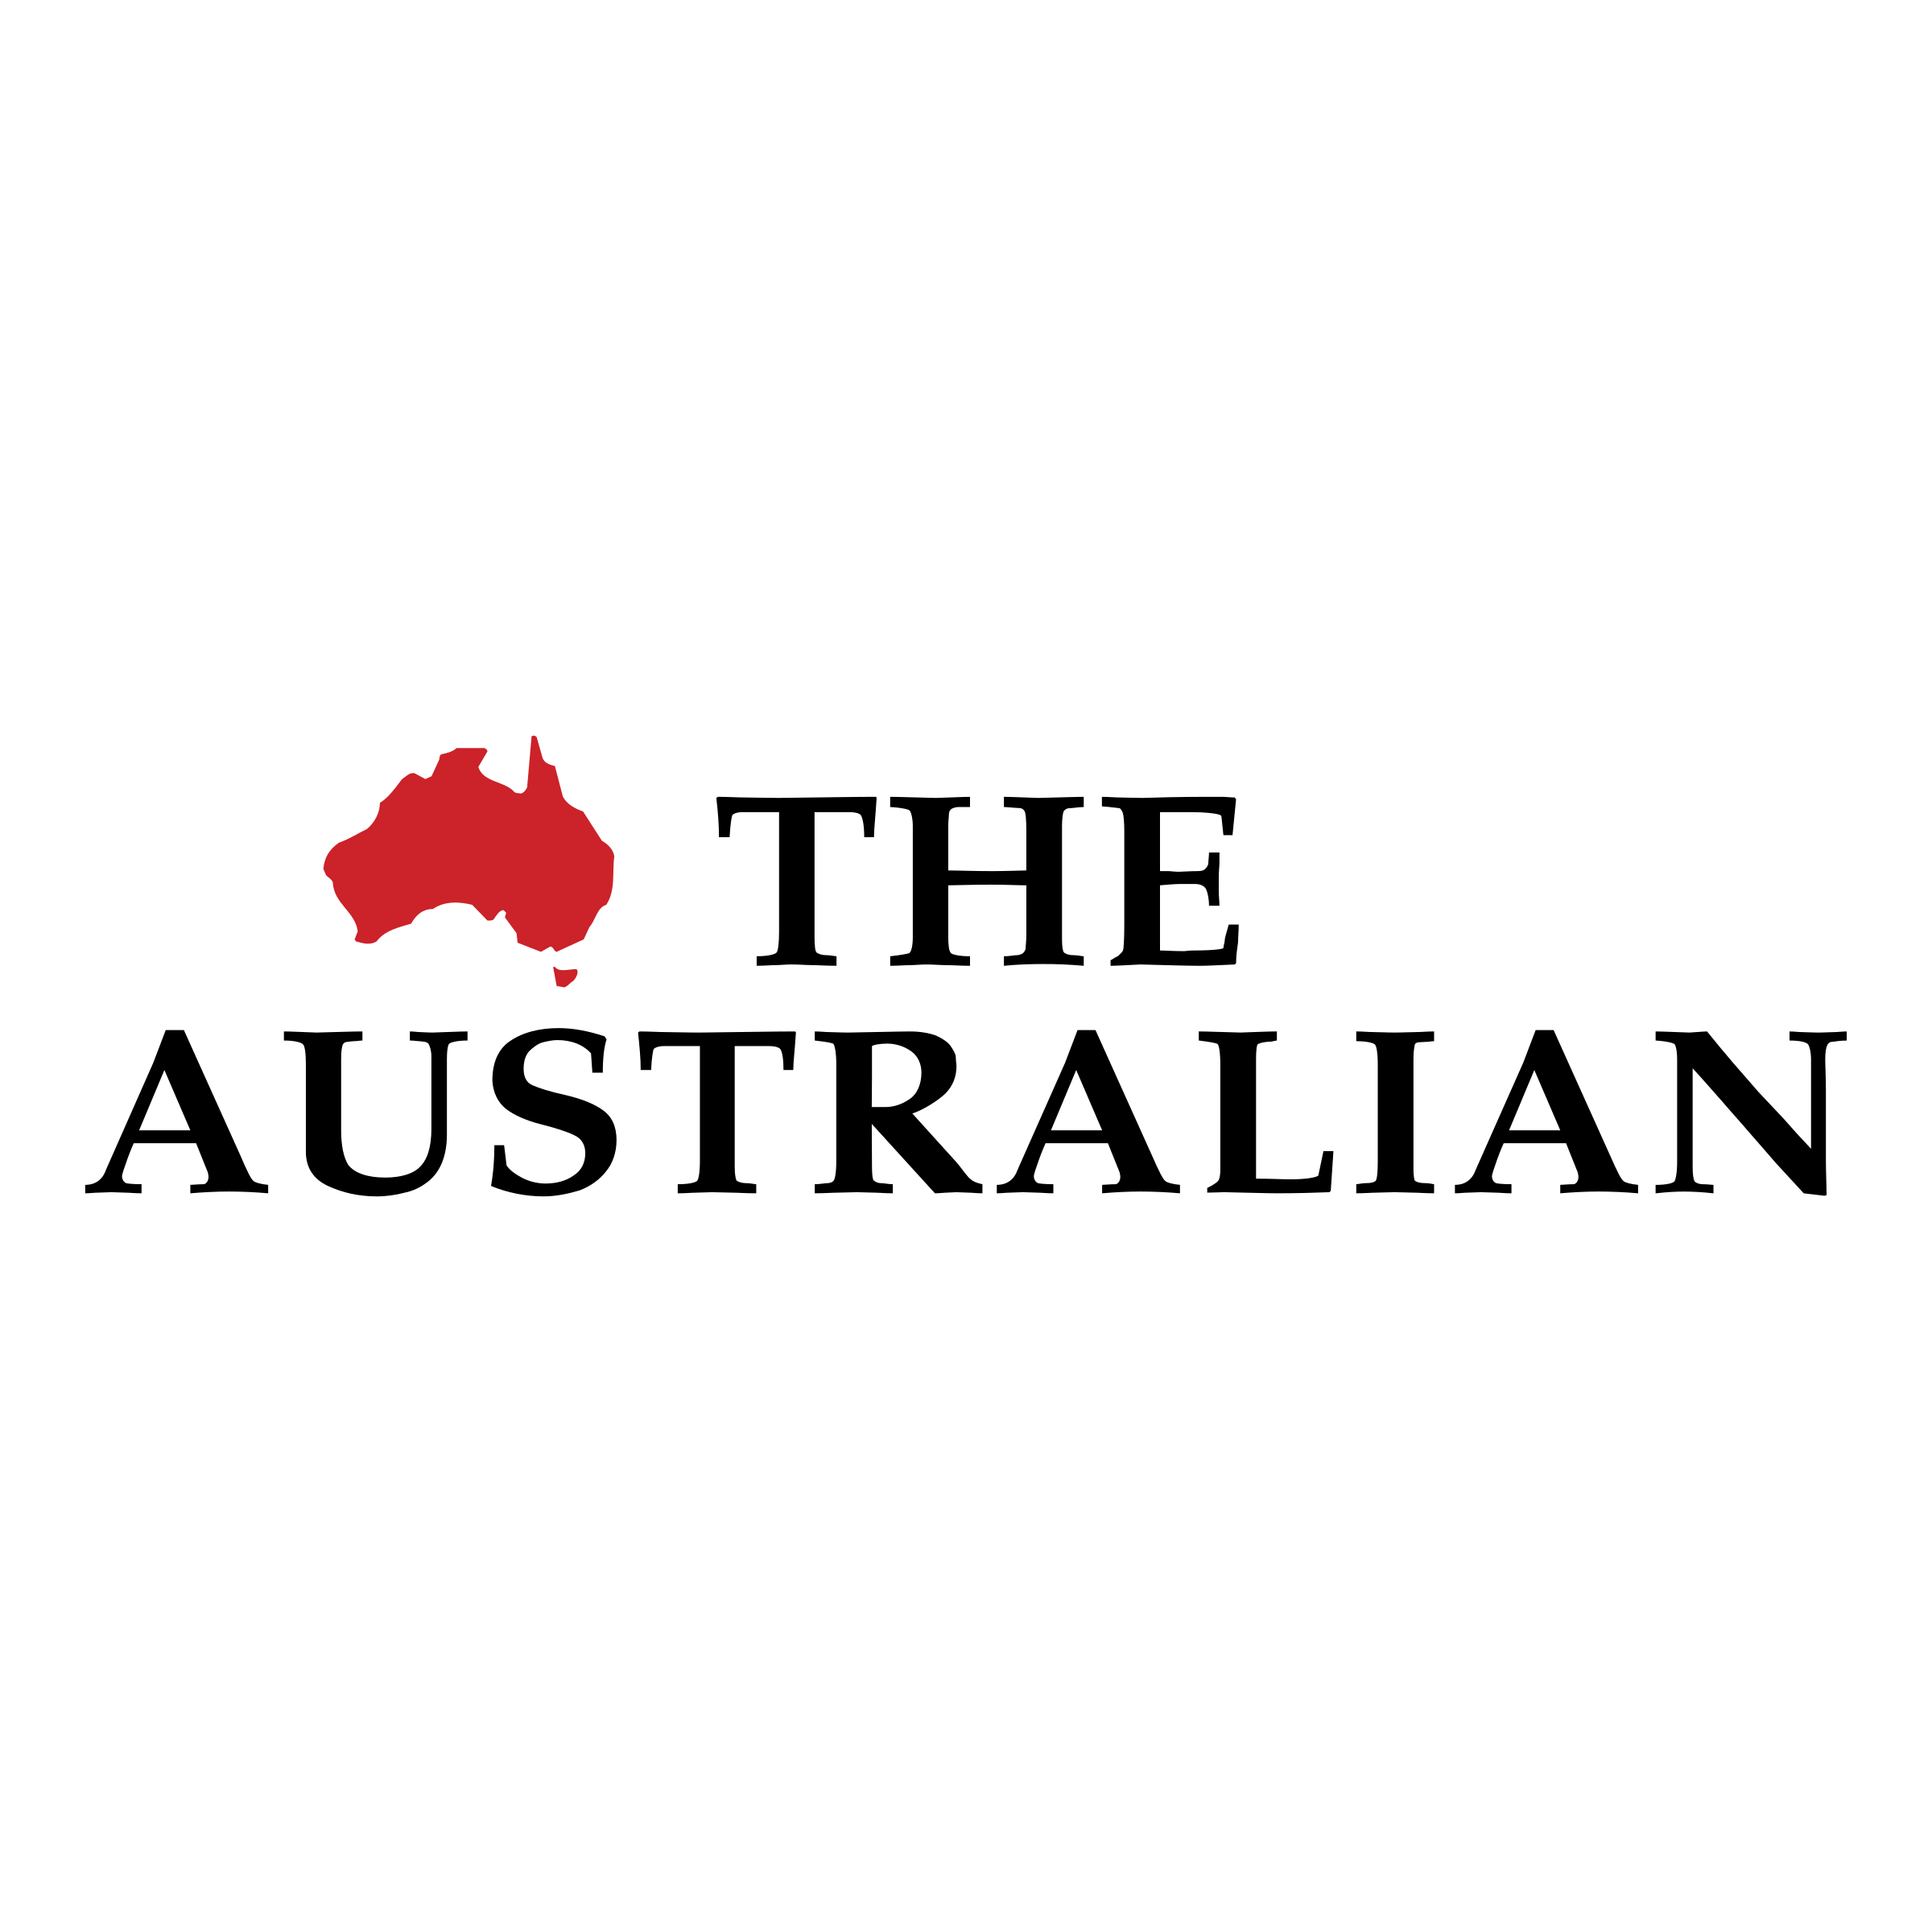 the-australian-newspaper-logo-png-transparent